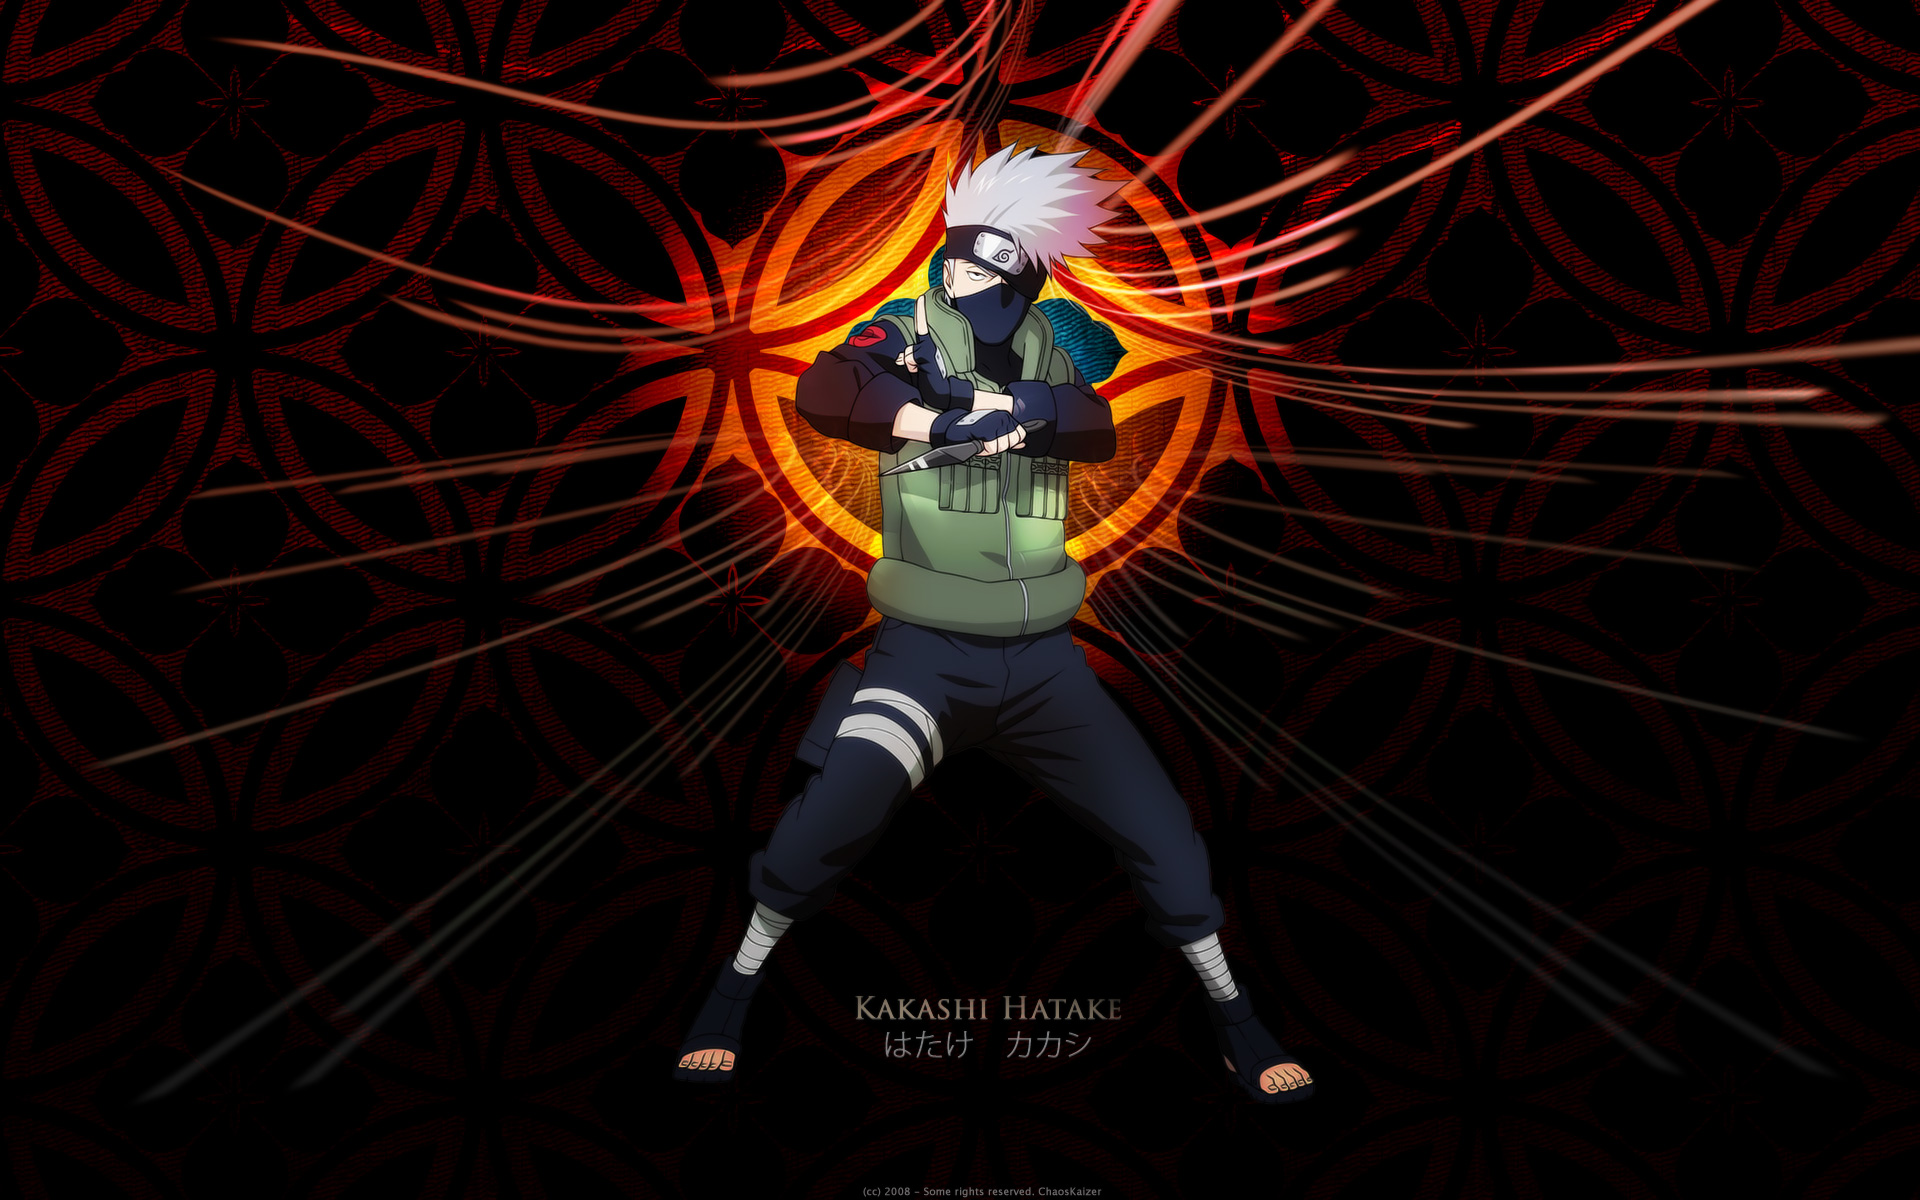 Collection of Download Wallpapers Naruto Shippuden on HDWallpapers